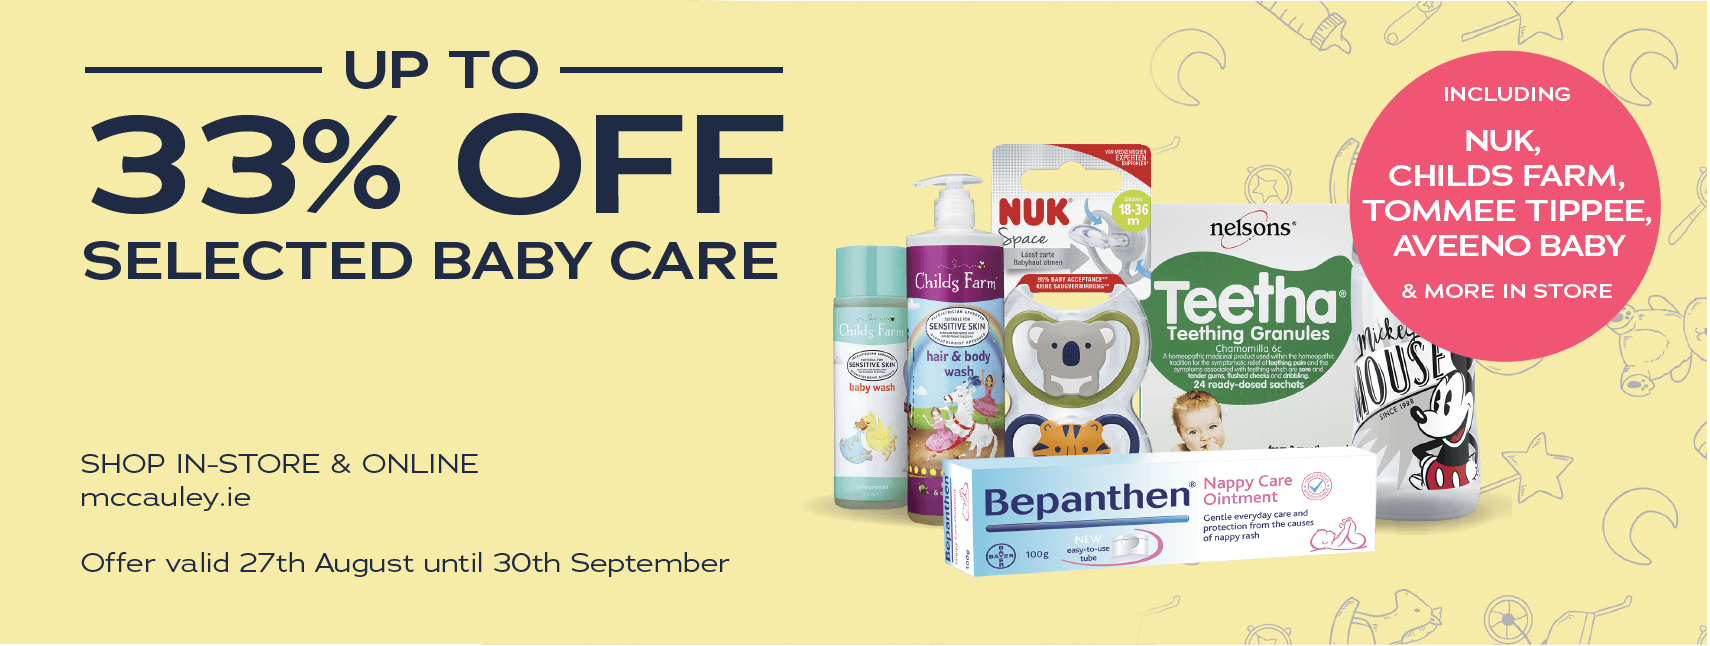 Up To 33% Off Selected Baby Care